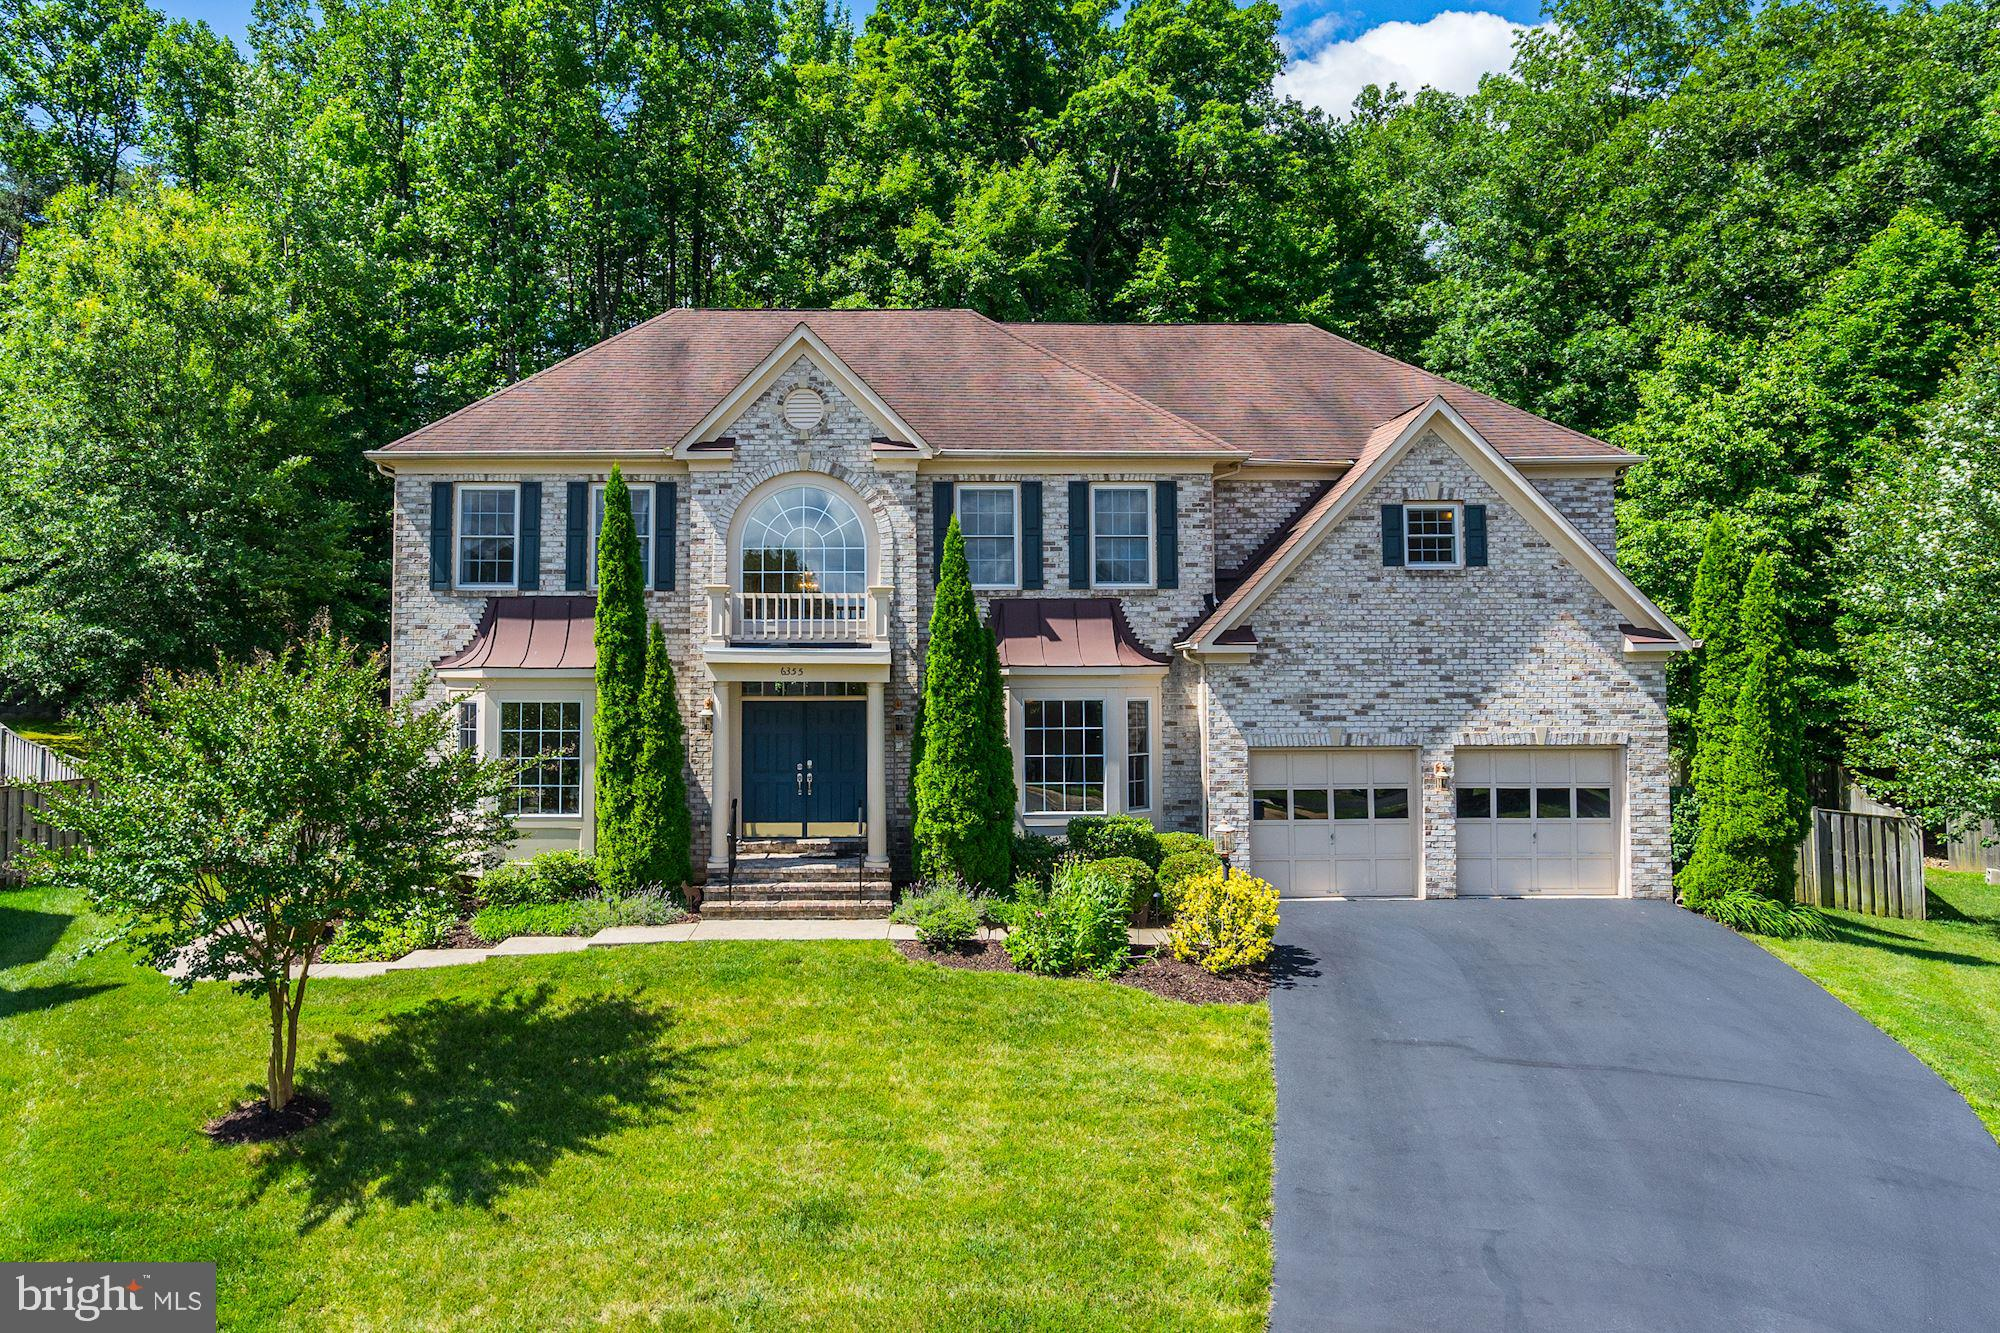 Premium Lot back to woods, professional landscaped, Underground Sprinkler System, the extensive patio is ideal for entertainment, exterior lighting system. Open concept spacious kitchen, breakfast bar, and space for a large table next to the kitchen, butler's pantry, large studio, spacious family room next to the kitchen area, formal dining room, separate living room, 2 story foyer, hardwood on main level. Large master bedroom with sitting area, walk in closet, large master bathroom, 4 bedrooms 3 full baths in the upper level. The basement has a large room that can be used as a bedroom which is connected to the full bath, which also has a door to the main basement area, wet bar, family room, and a large Home Theather room, this is a great, amazingly spacious home, with a half an acre lot located in a cul de sac that backs to the woods, great location close to the metro, the Kingstowne shops, Springfiled Mall, close to major roads!